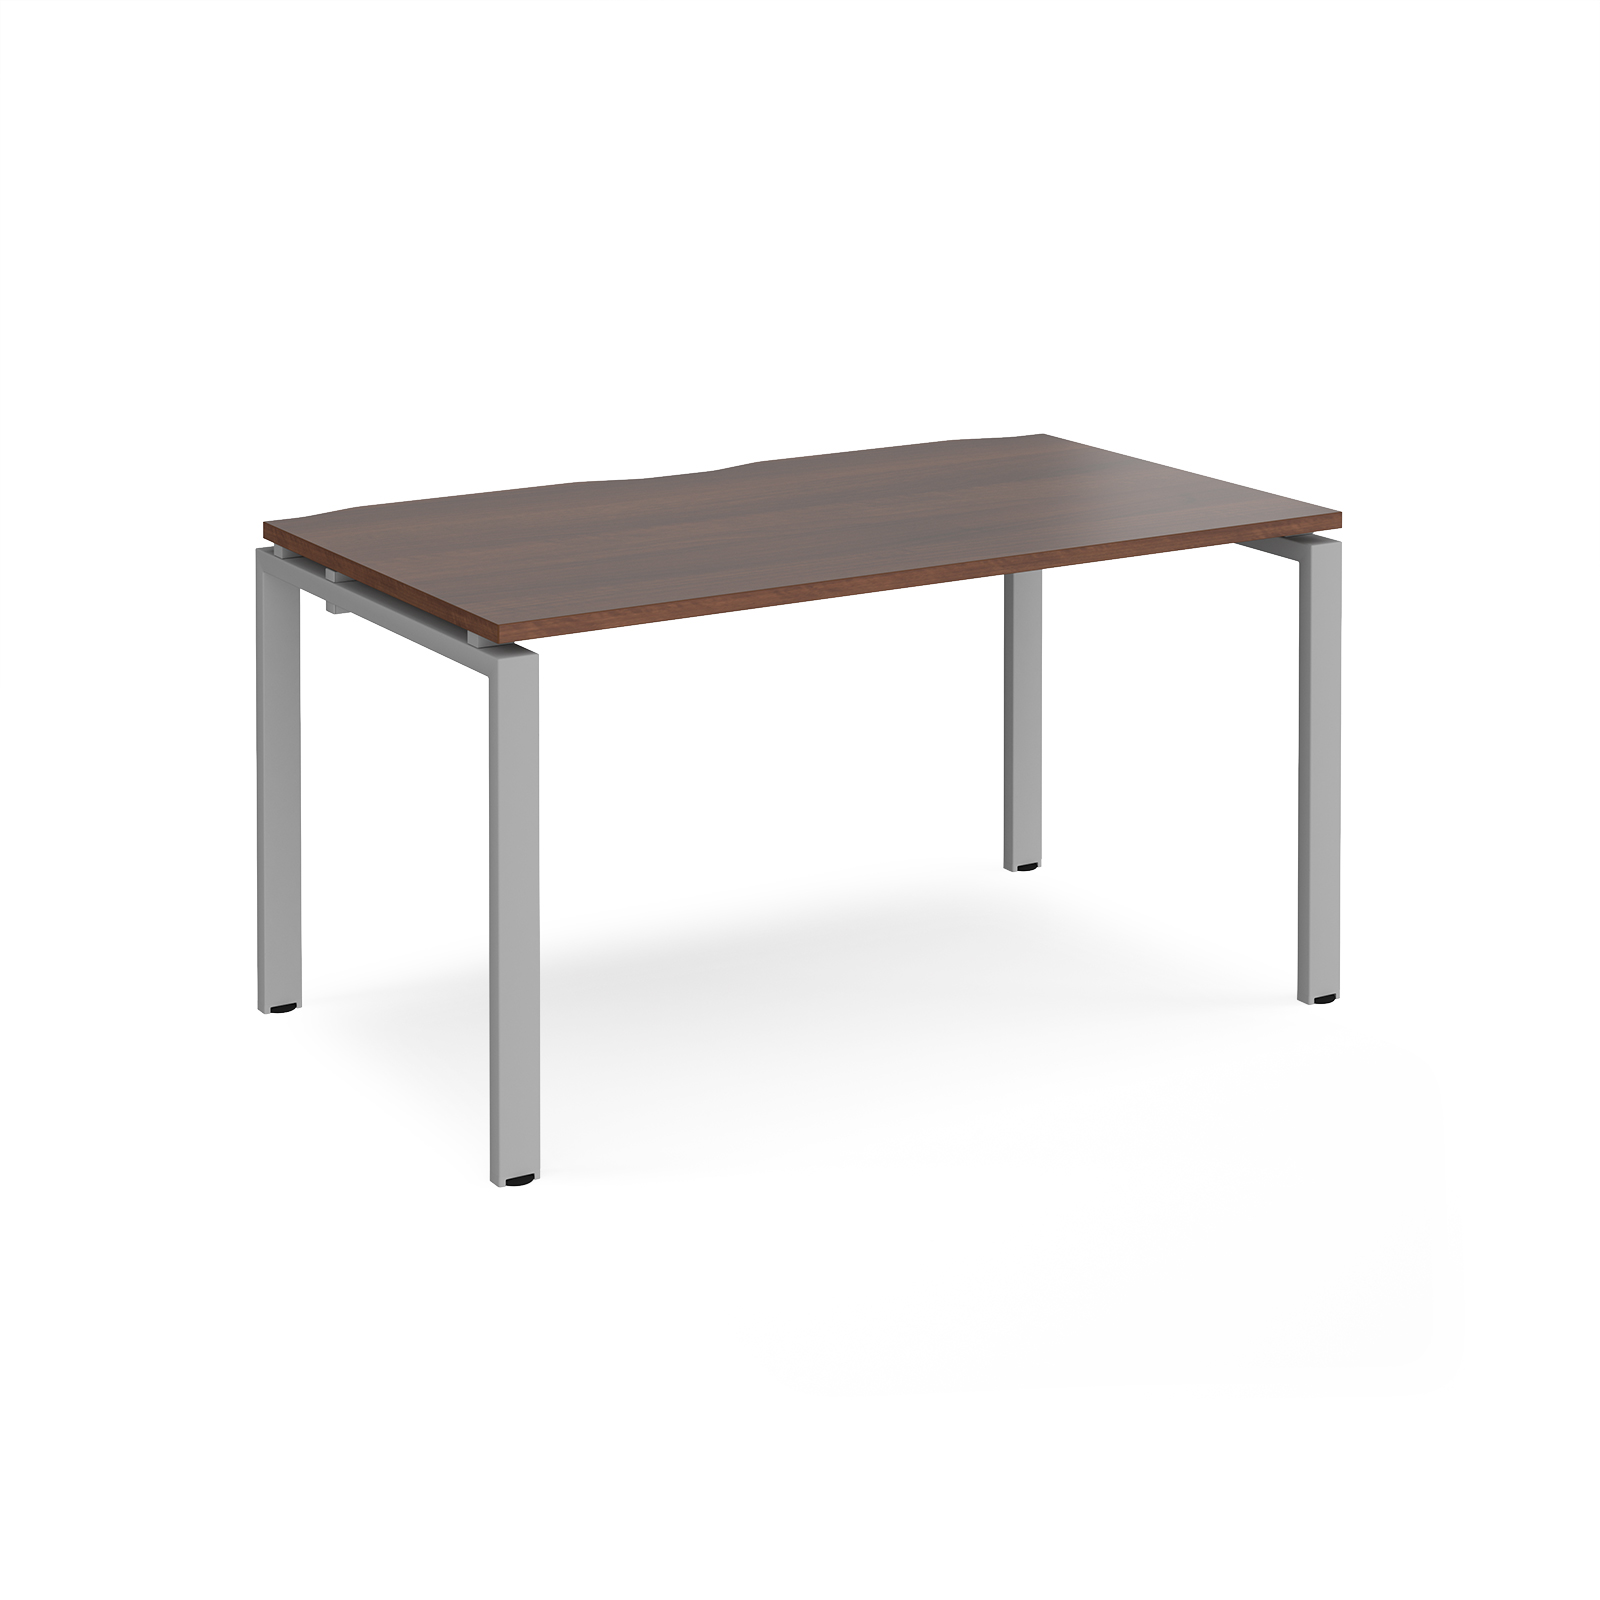 Image for Adapt II Single Desk 1400x800mm Silver Frame Walnut Top